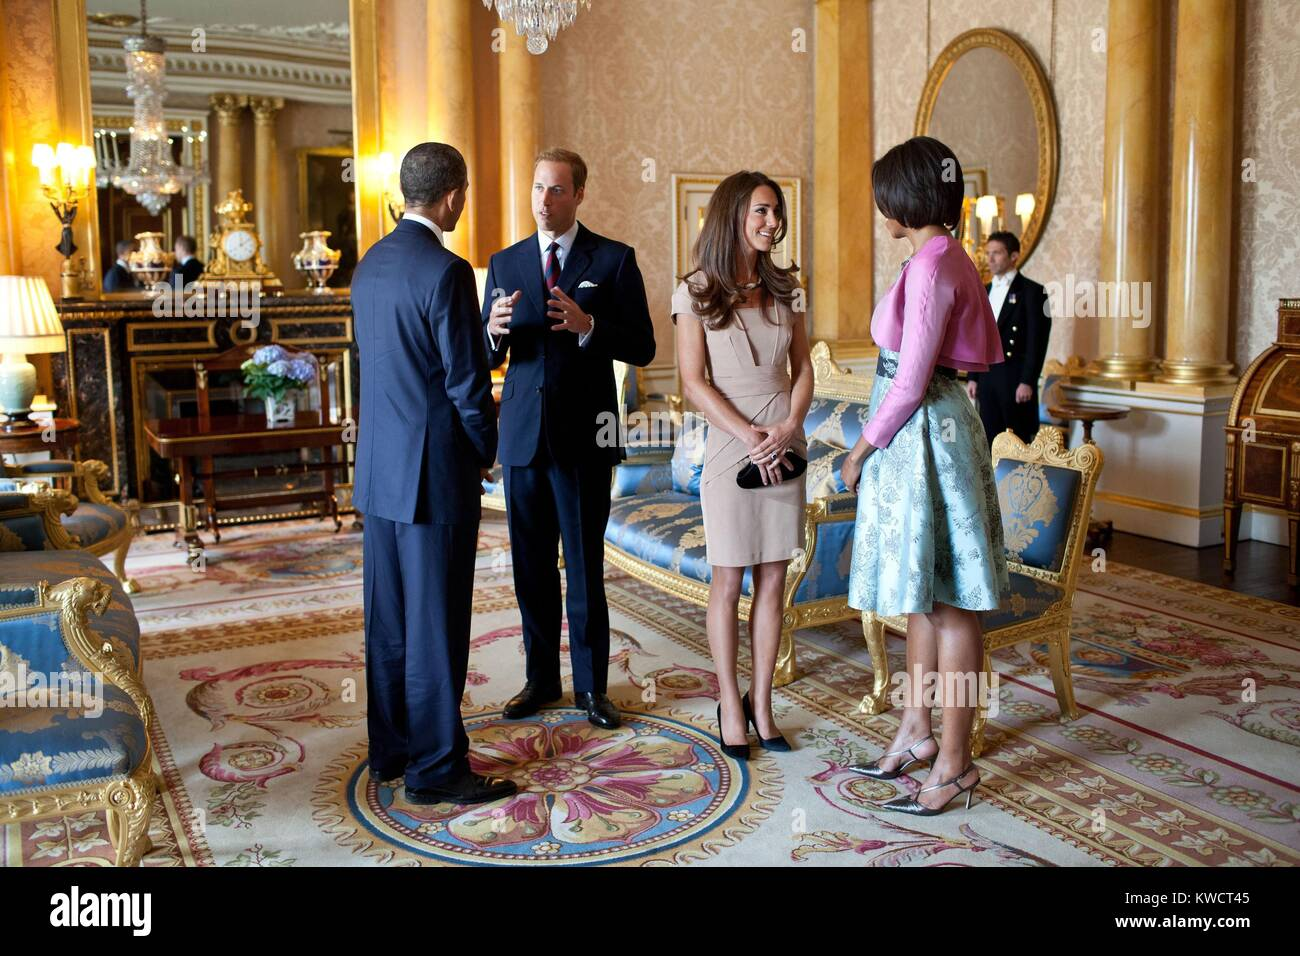 President Barack Obama and First Lady Michelle Obama with the Duke and Duchess of Cambridge. In the 1844 Room at - Stock Image